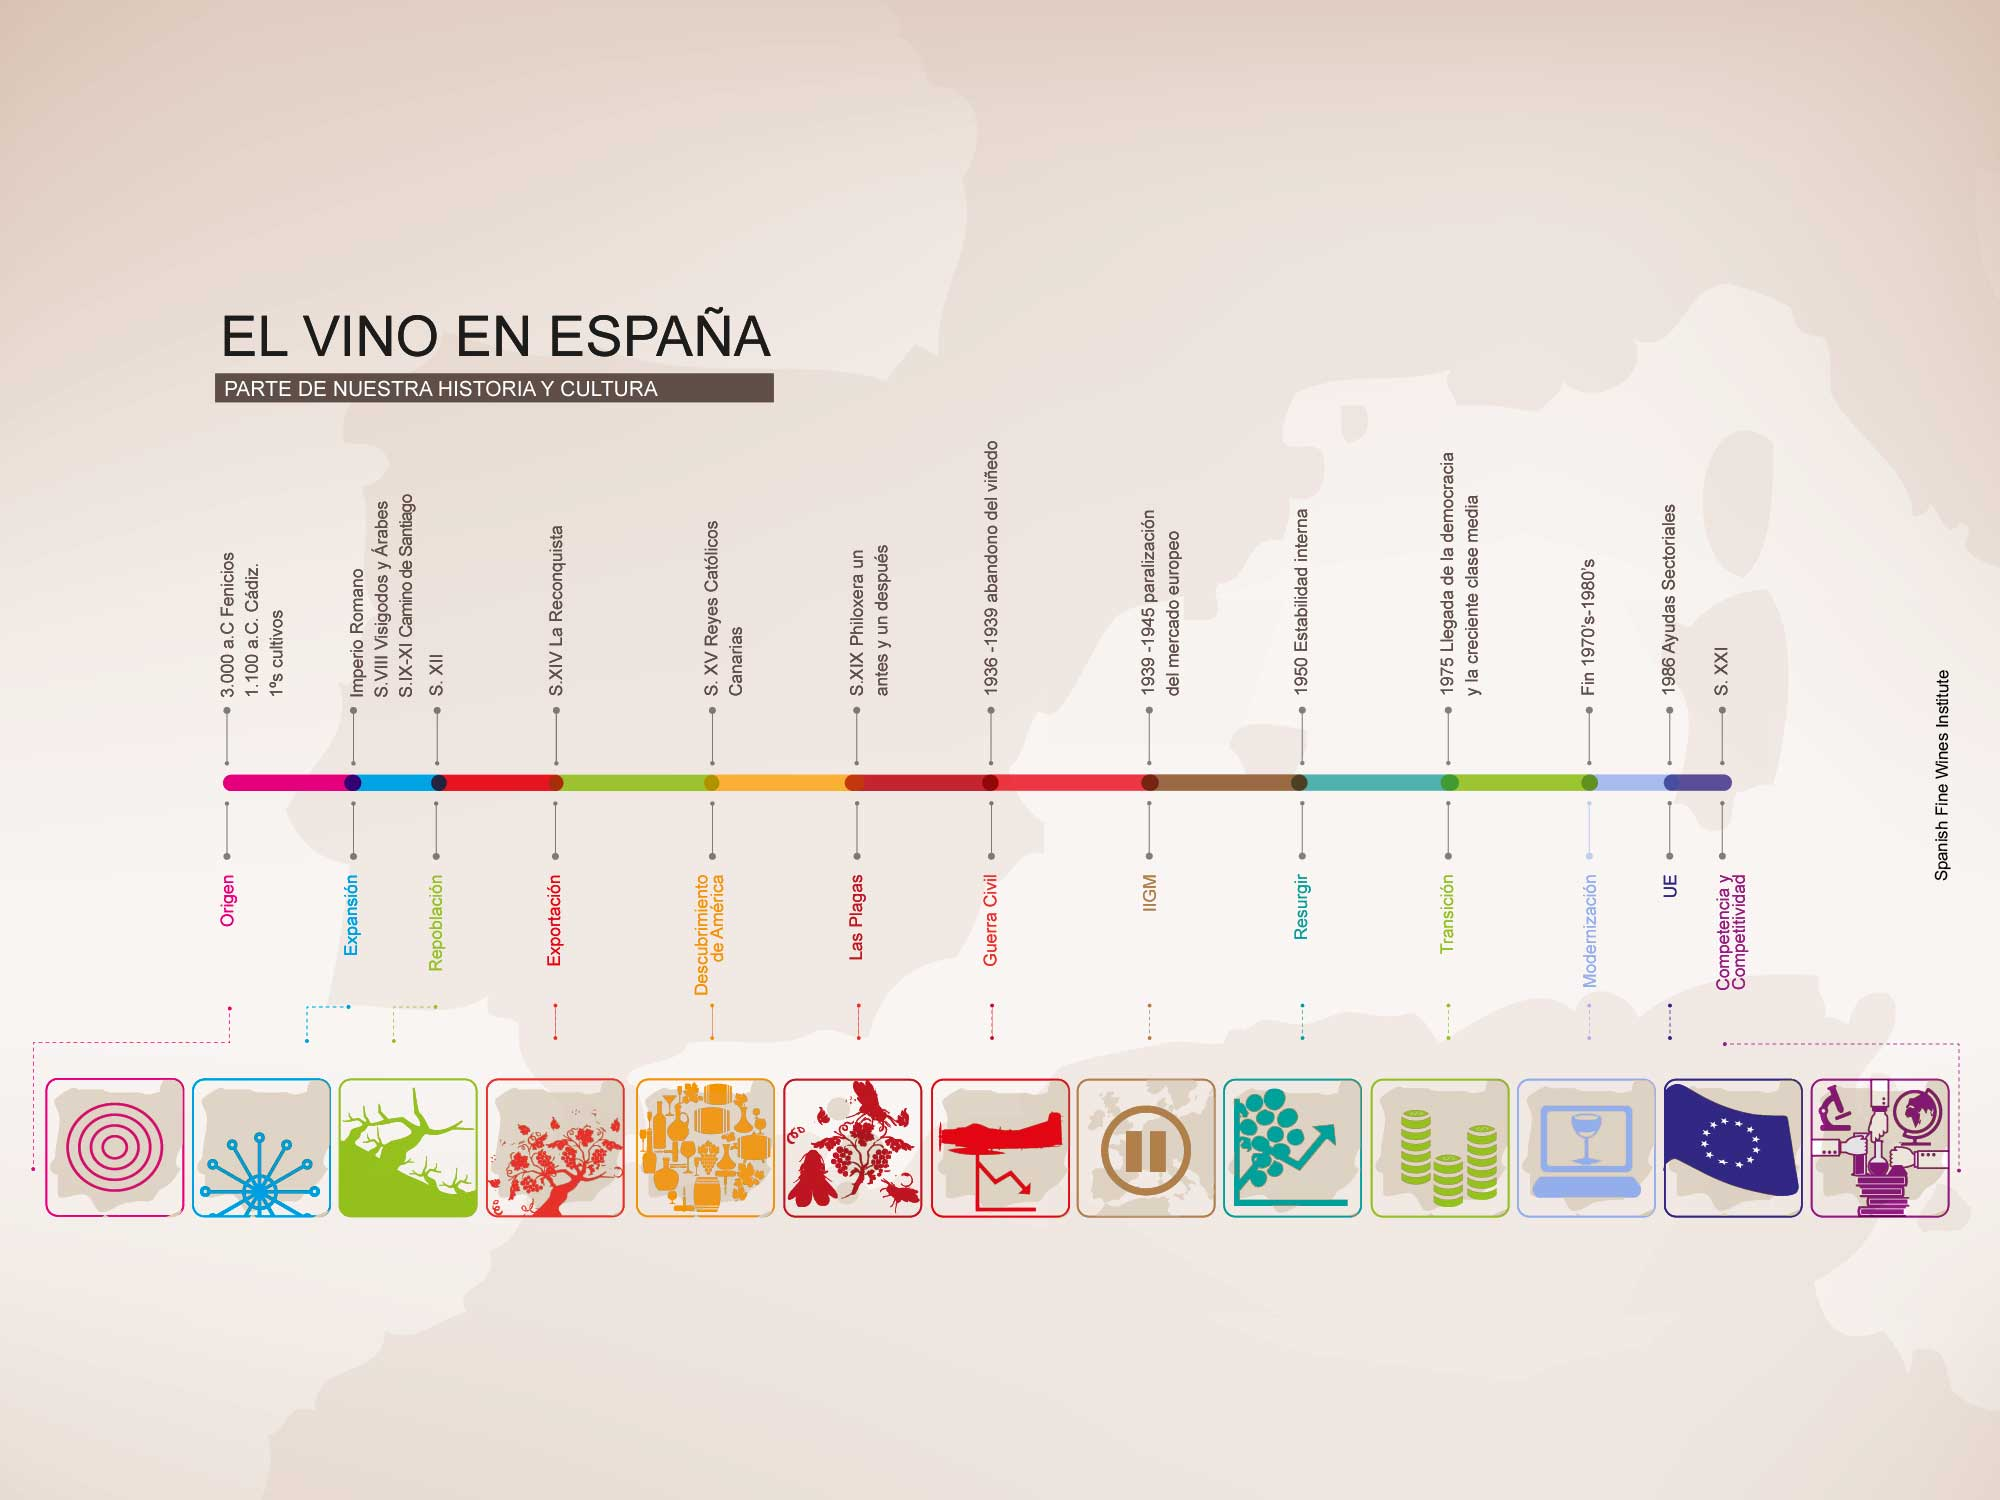 THE WINE IN SPAIN: PART OF OUR CULTURE AND HISTORY.